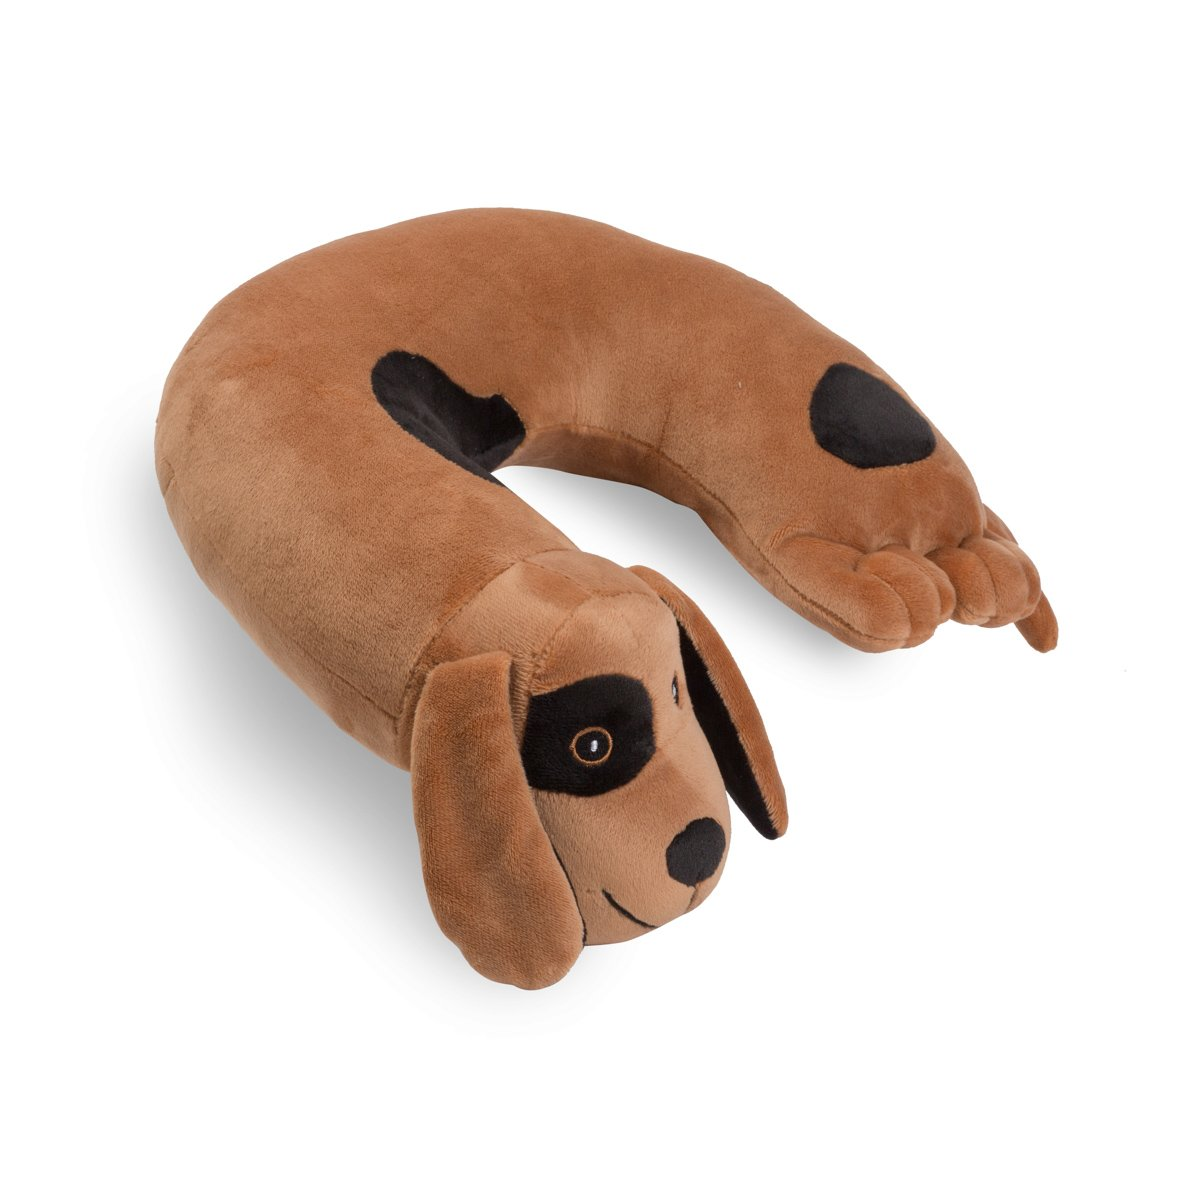 Critter Piller Kid's Travel Buddy and Comfort Pillow